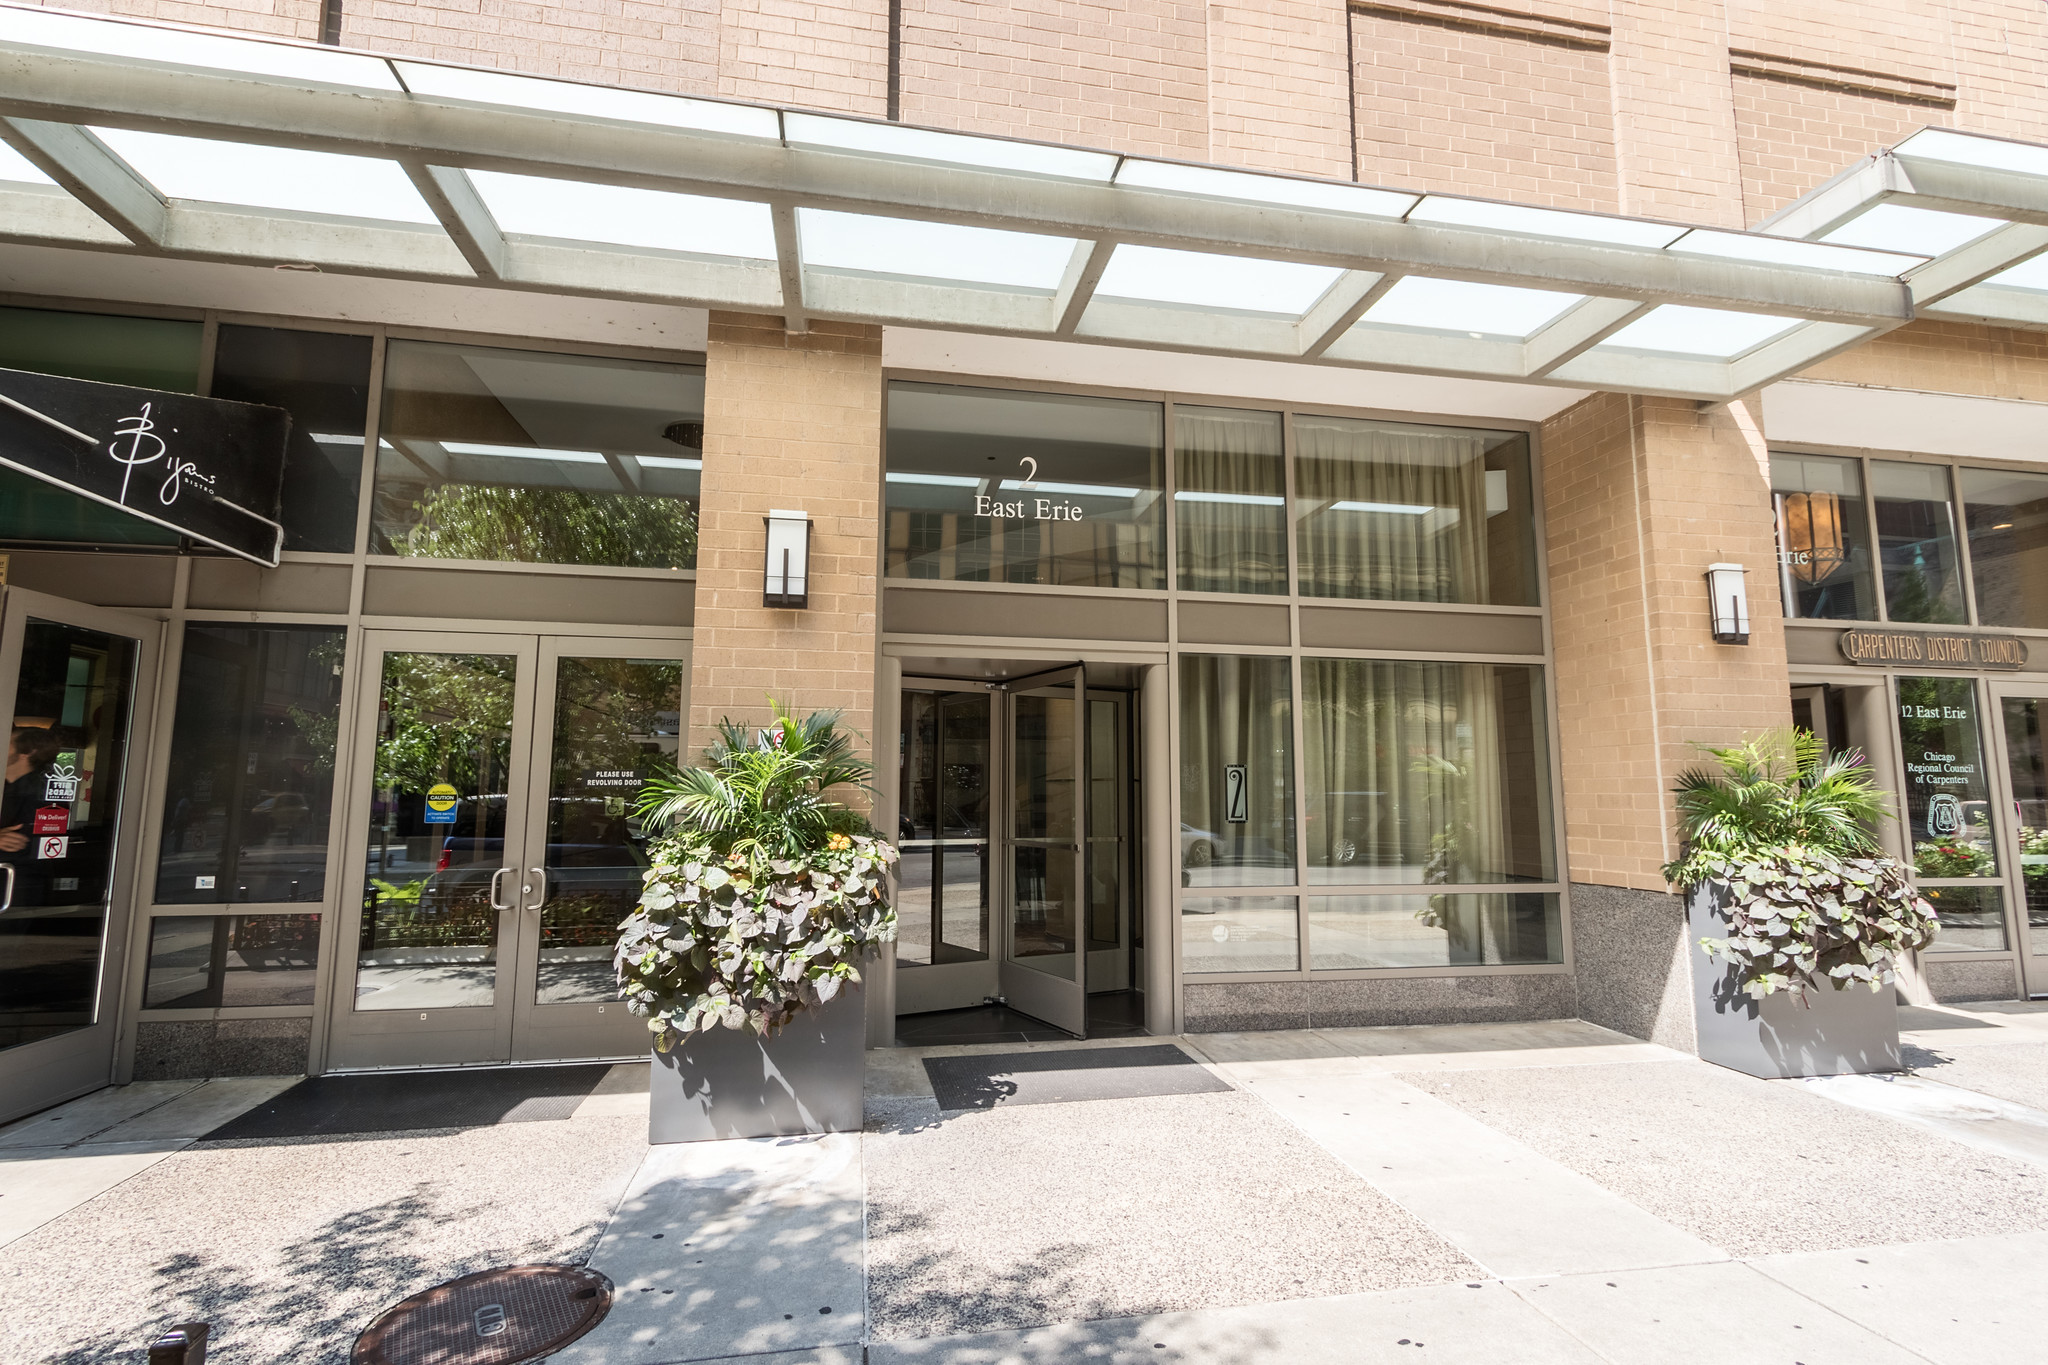 Contemporary home in Chicago high-rise: $1.25M - Chicago Tribune